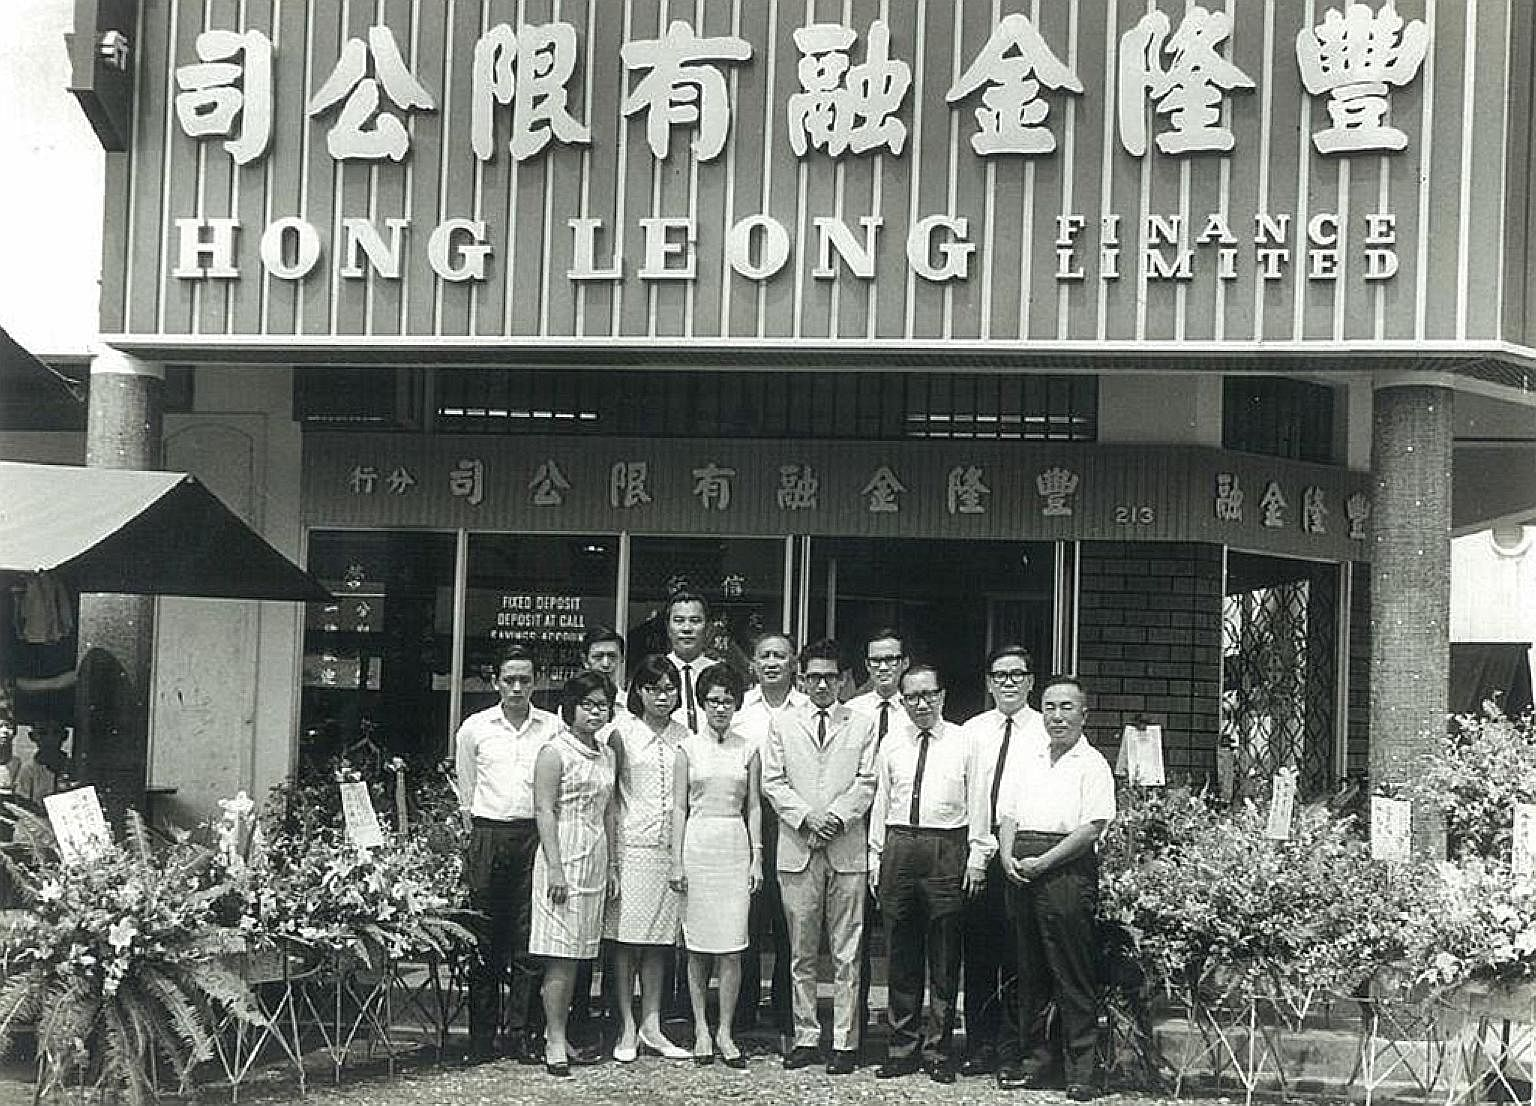 Mr Kwek Leng Beng with his wife, Cecilia Kok, in London in 1970; and at the opening of Hong Leong Finance Lavender Street branch (fifth from far right) in 1967.